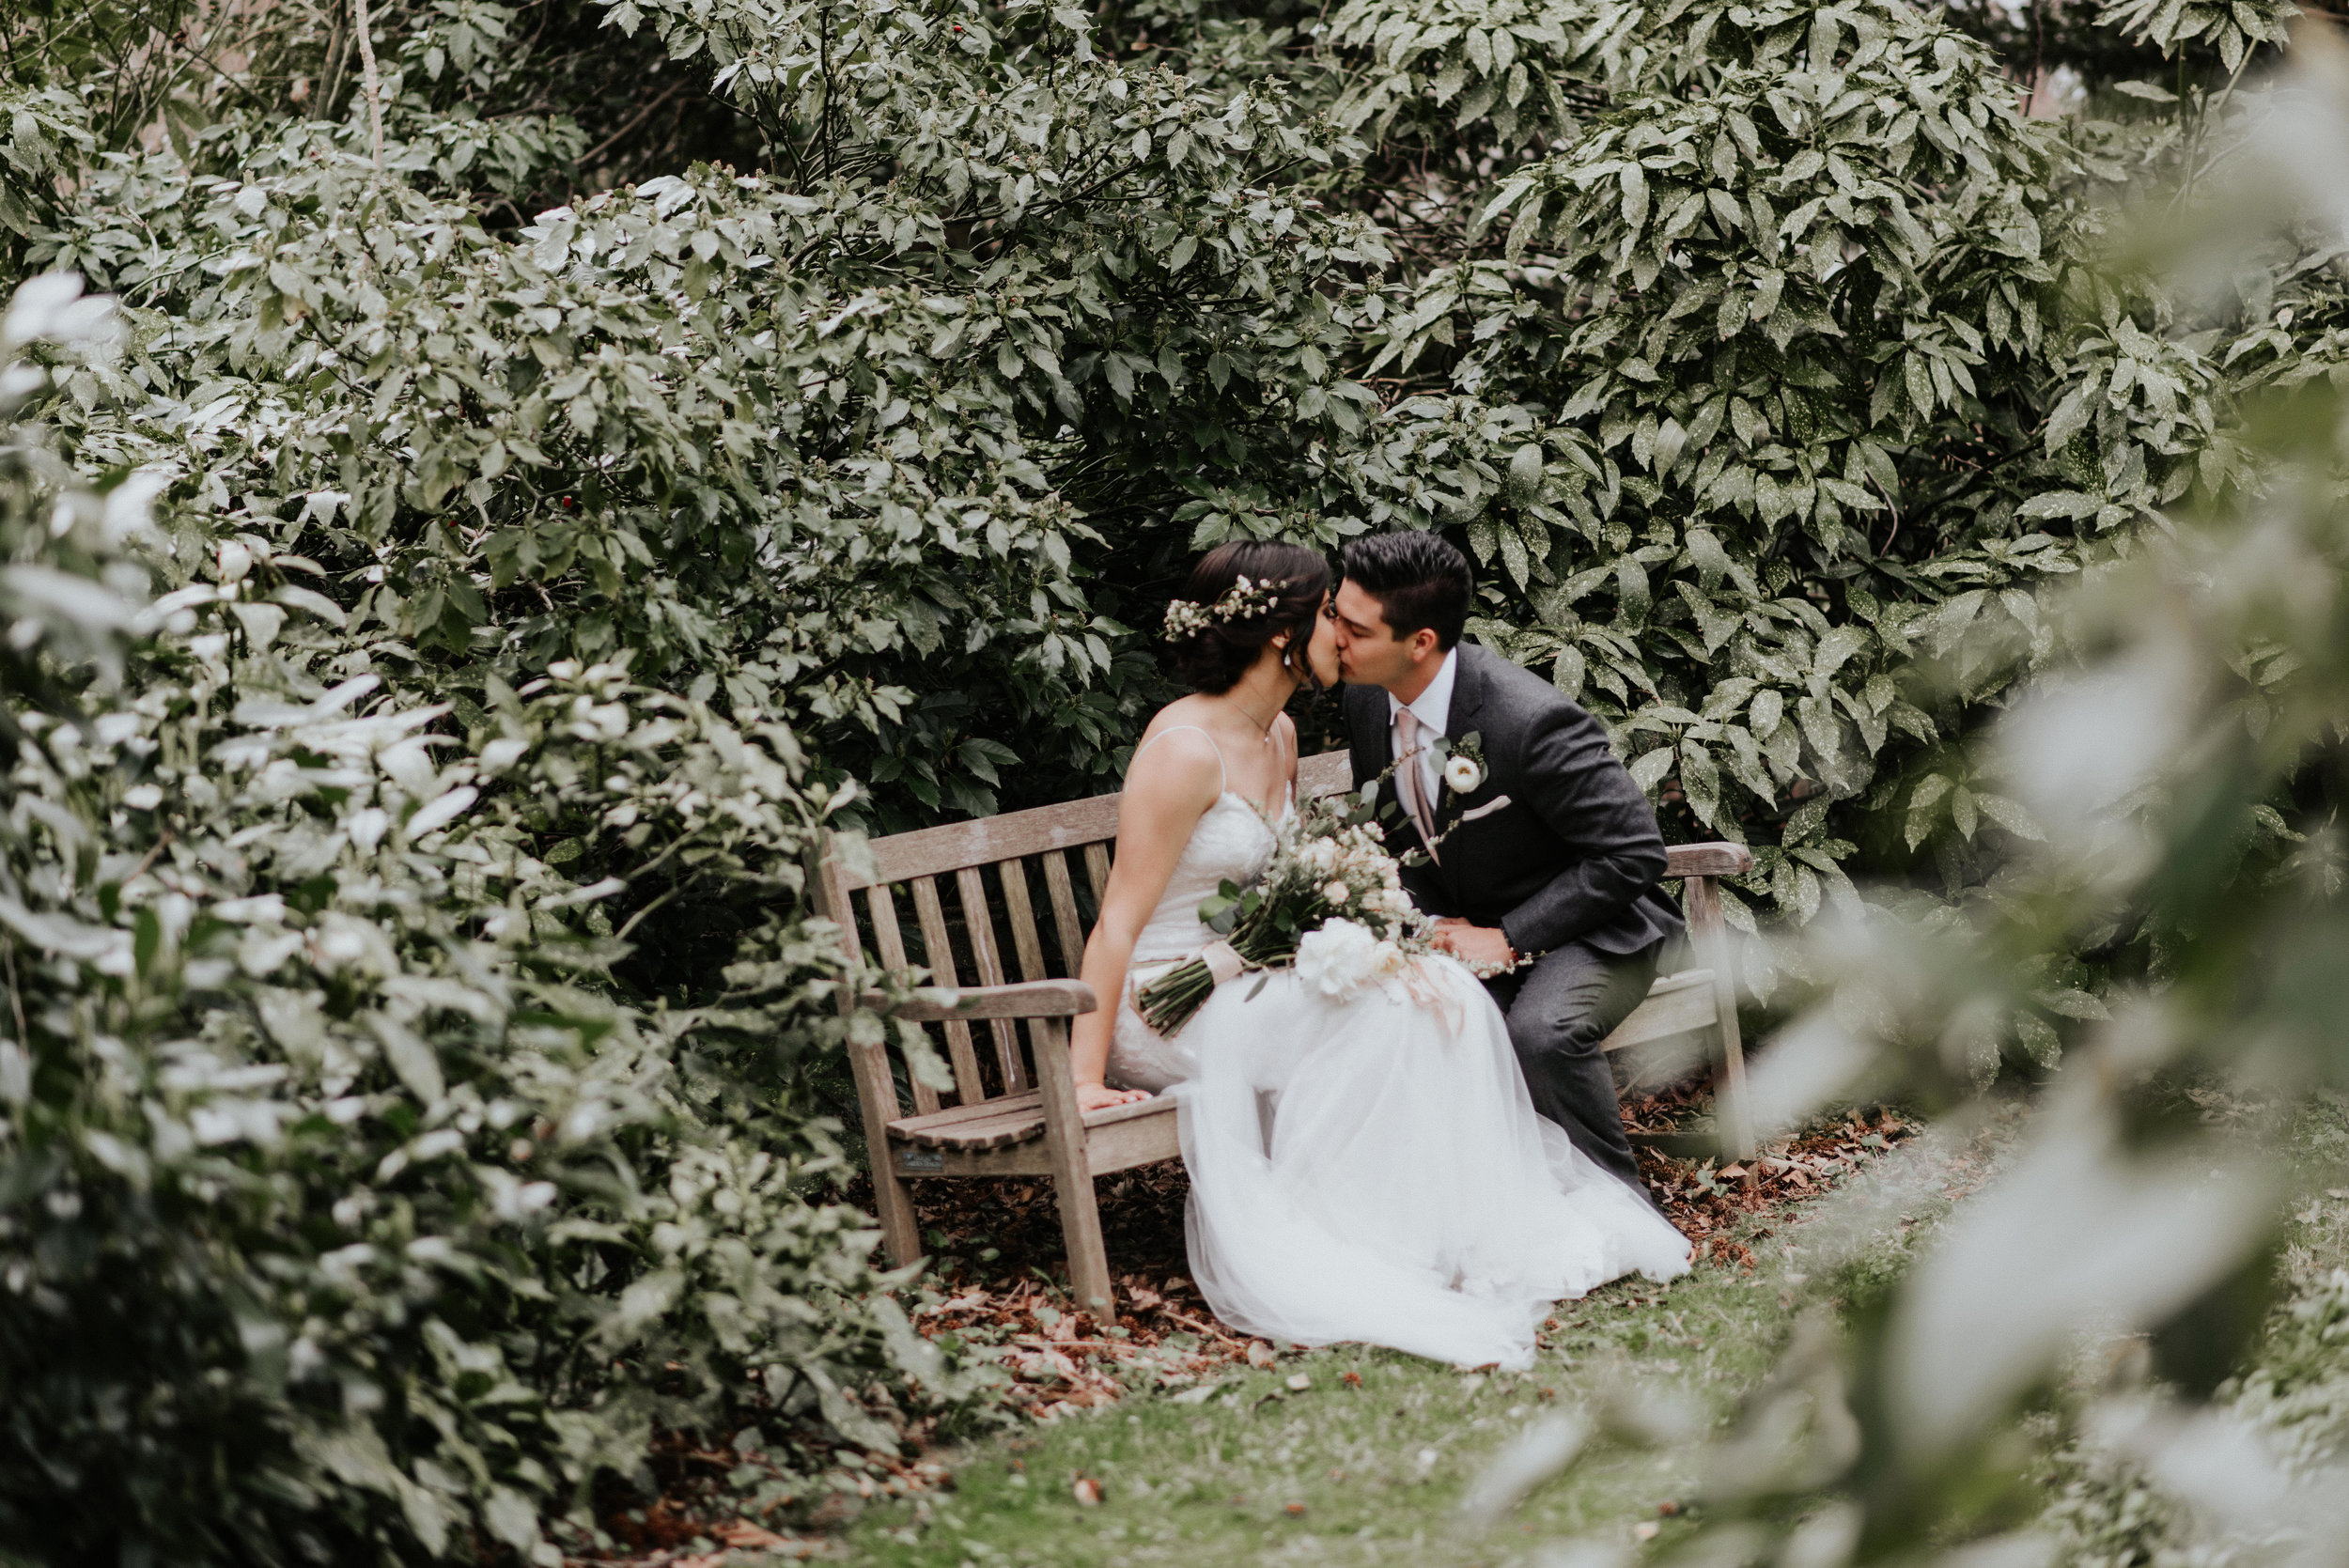 Bloss-Royalton at Roslyn Counttry Club-Planting Fields Arboretum-Long Island-Wedding-Photographer-01094.jpg